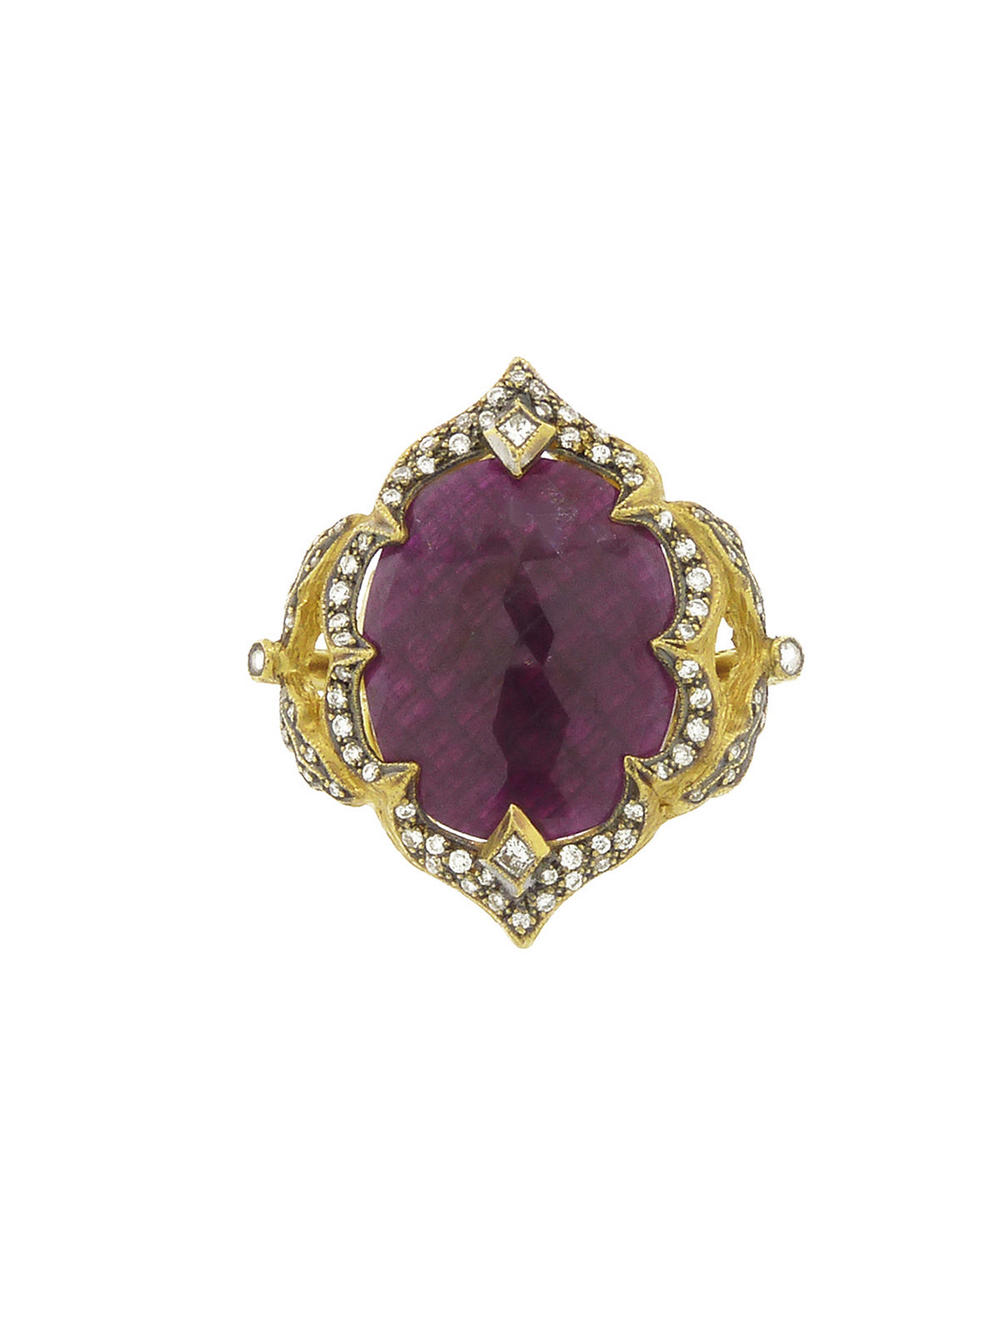 Cathy Waterman  22k gold rose-cut Ruby Arabesque ring, $17,760, available at  ylang23.com .